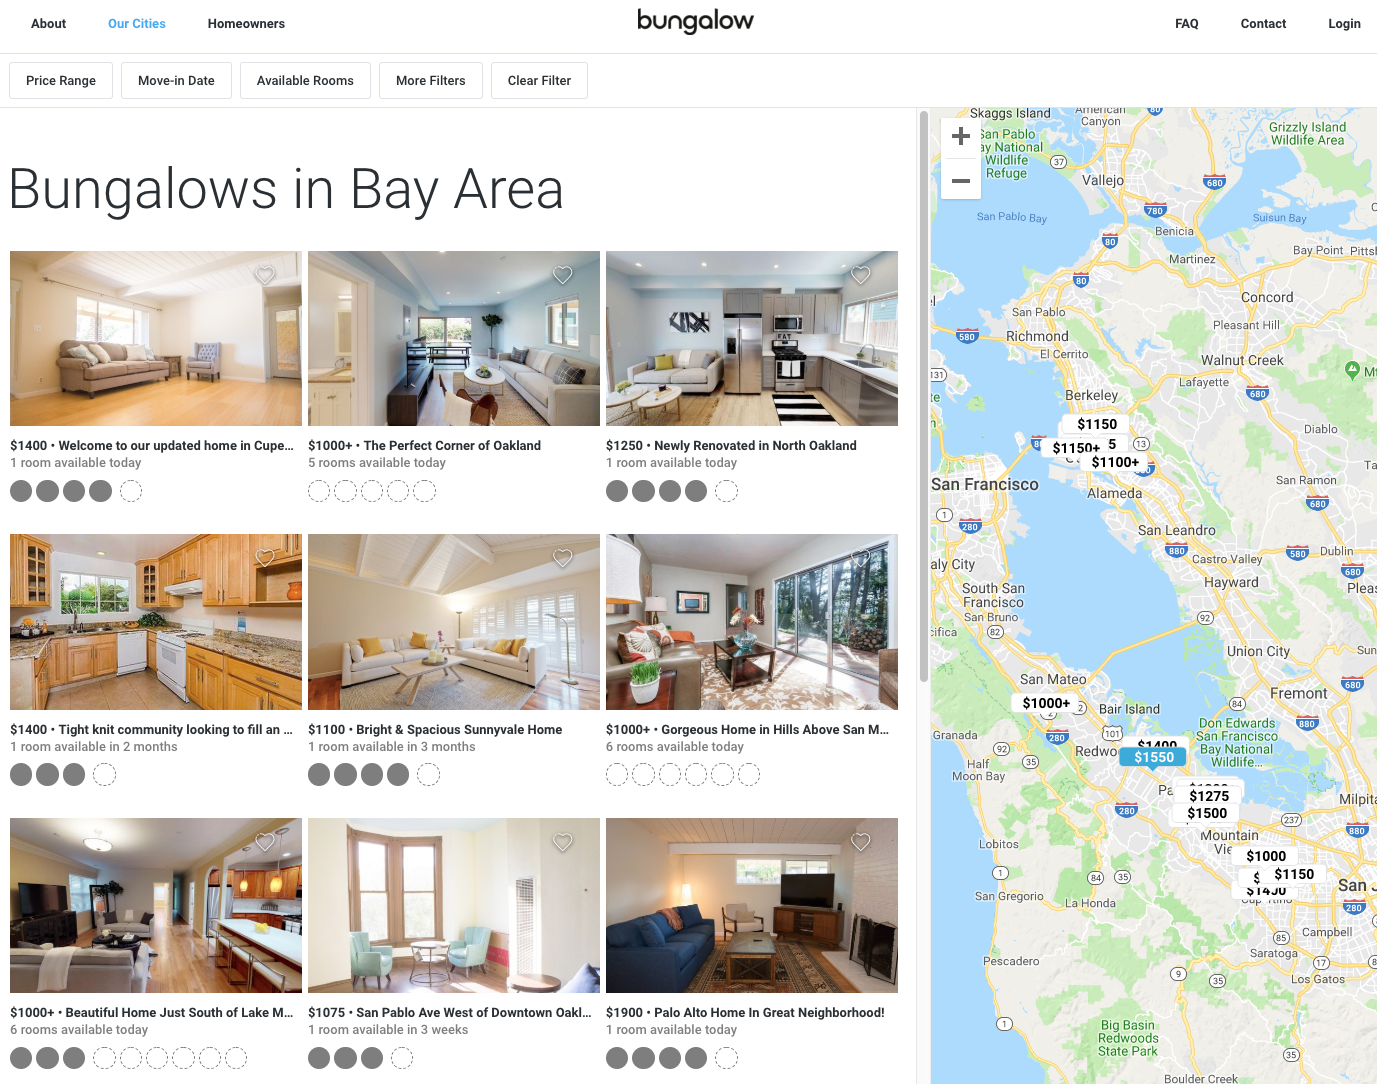 Housing startup Bungalow raises $14 million Series A round led by Khosla Ventures